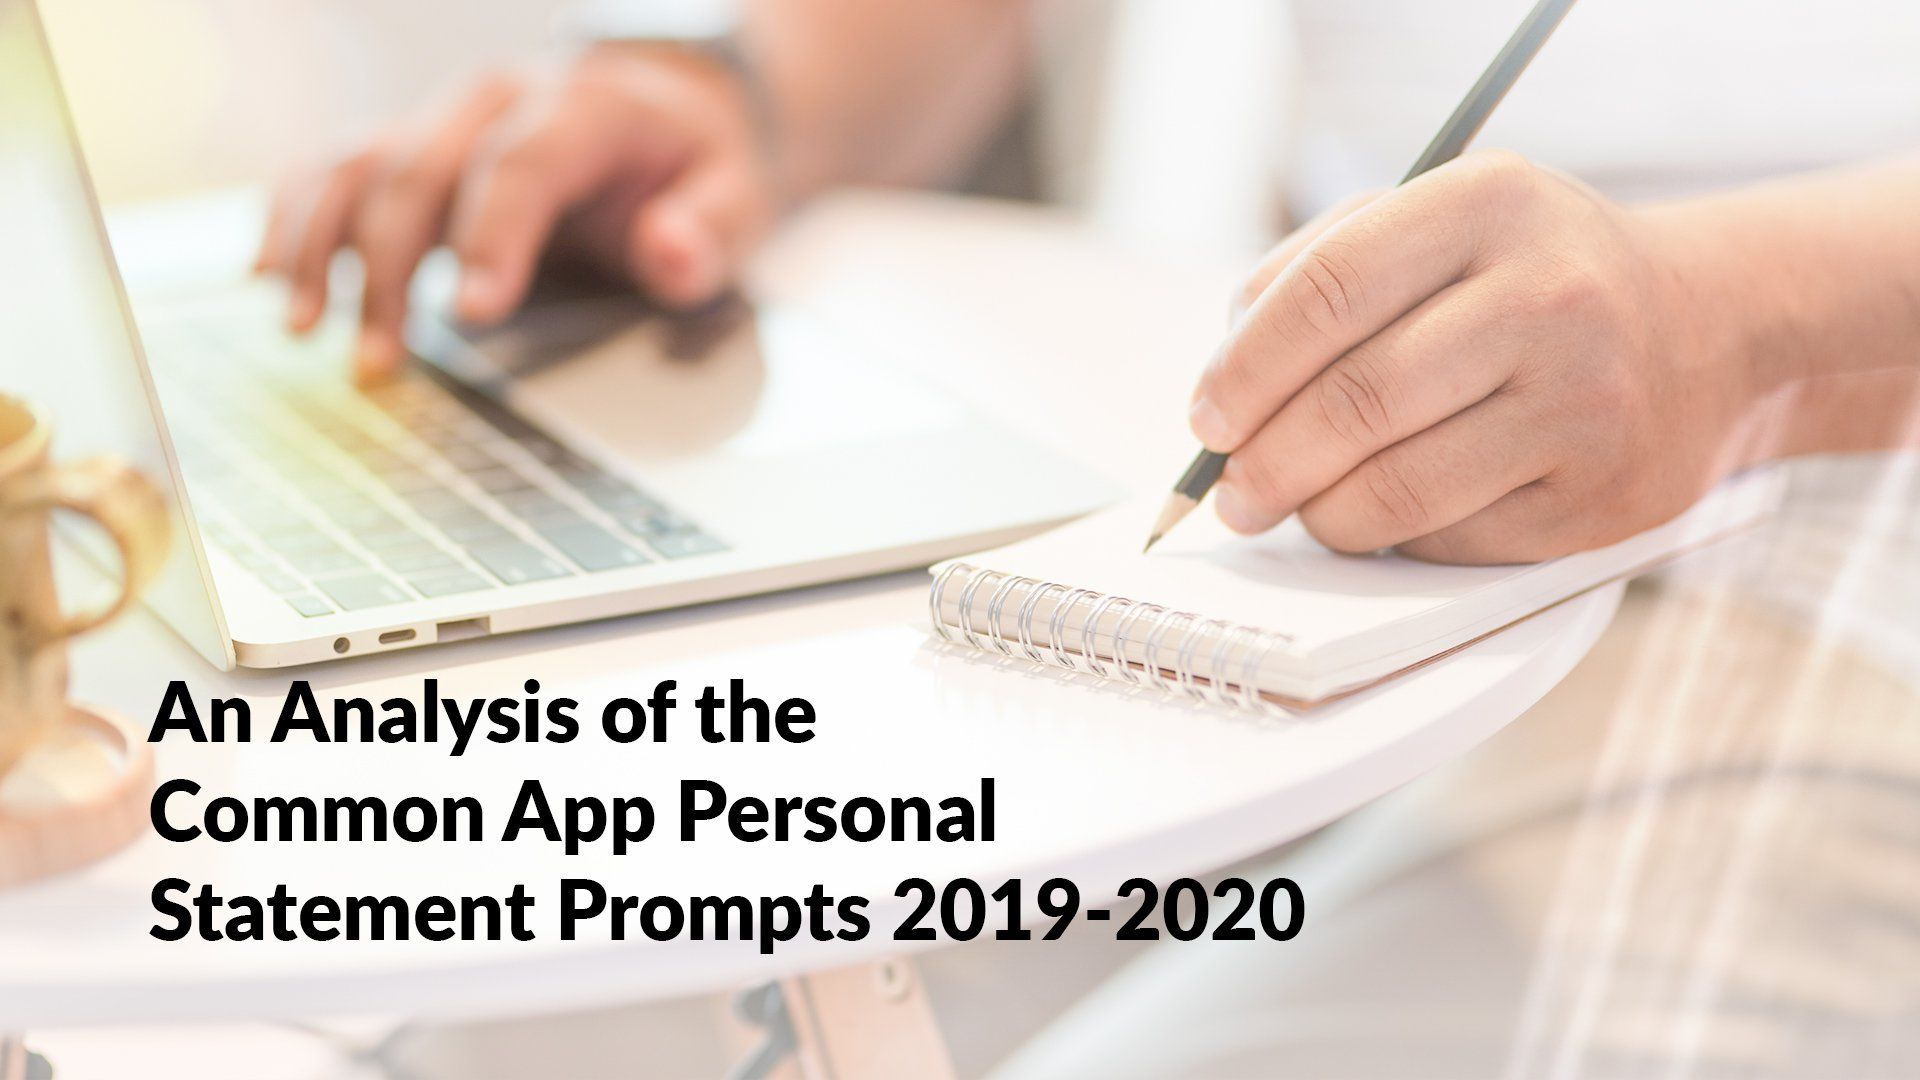 An Analysis of the Common App Personal Statement Prompts